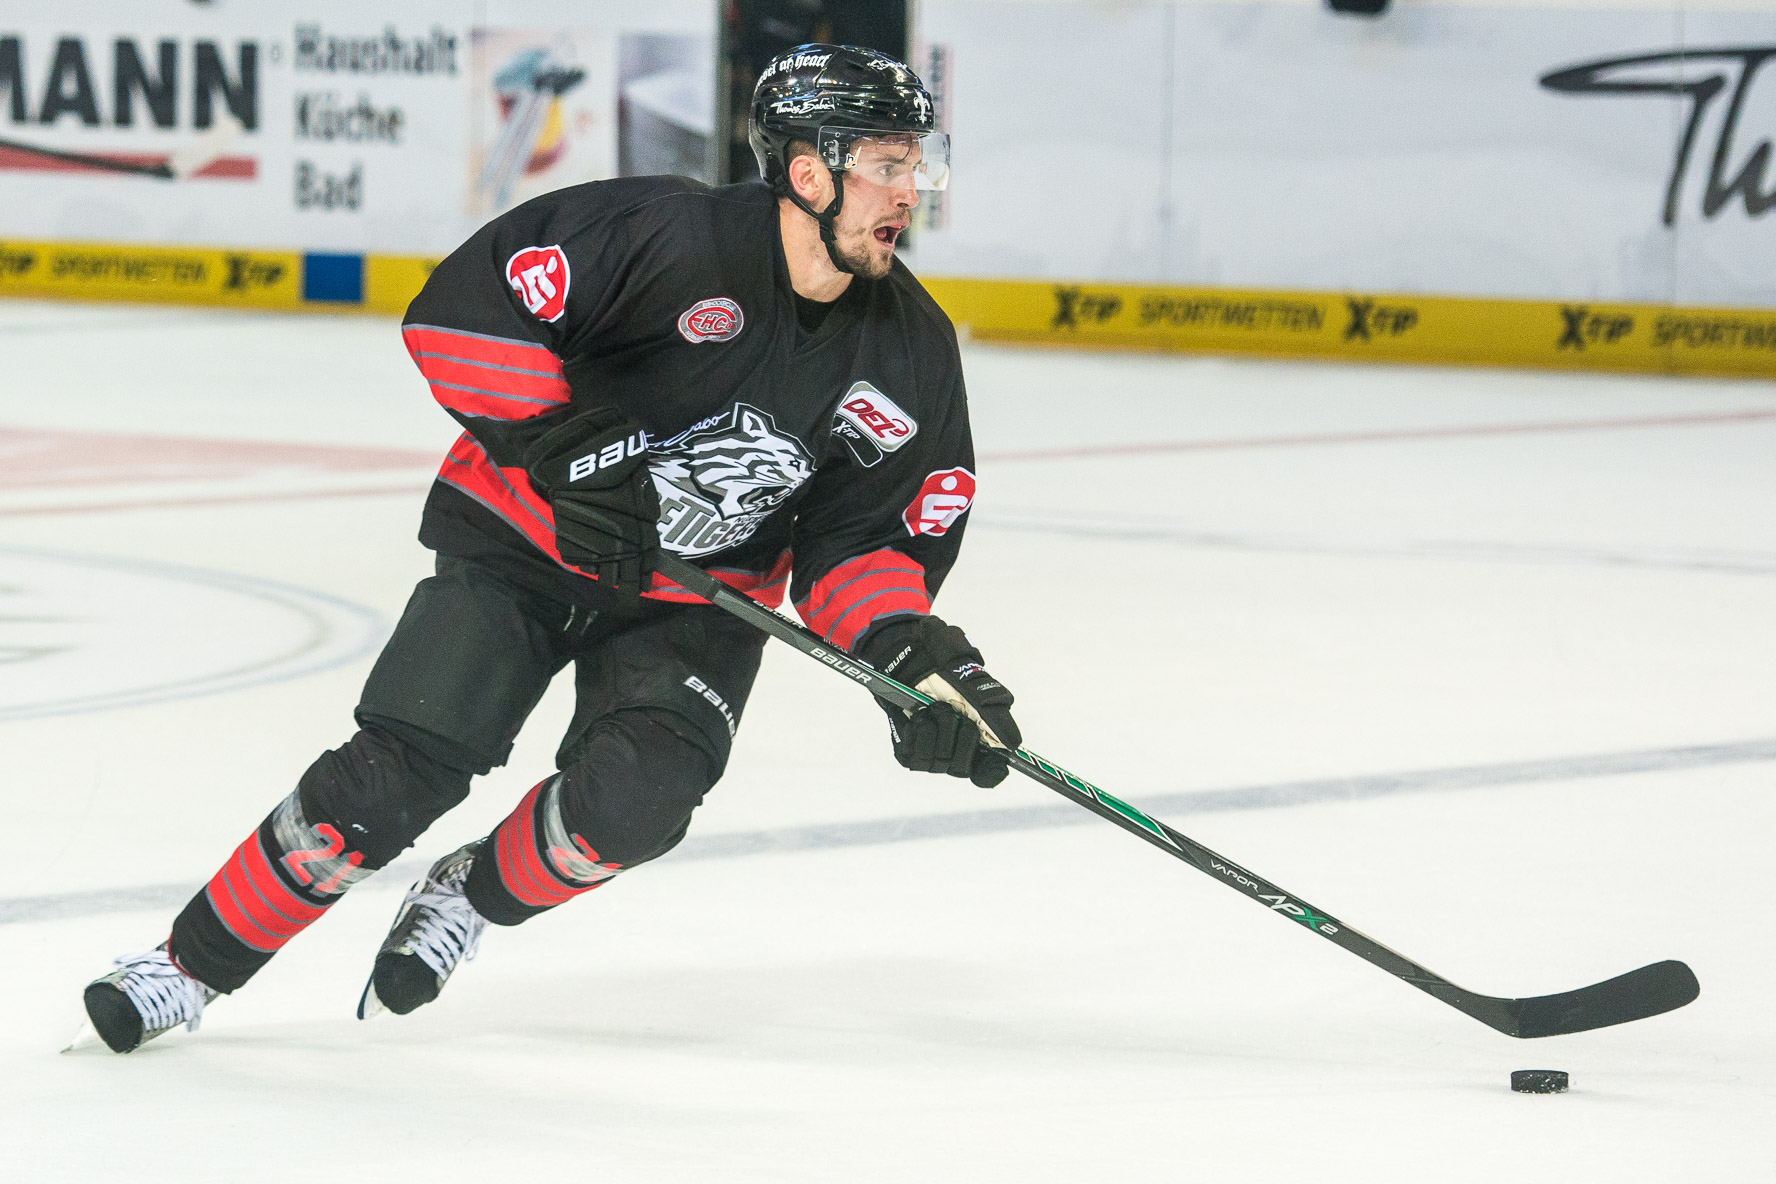 File:2014 DEL Nuernberg Ice Tigers Patrick Buzas by ...